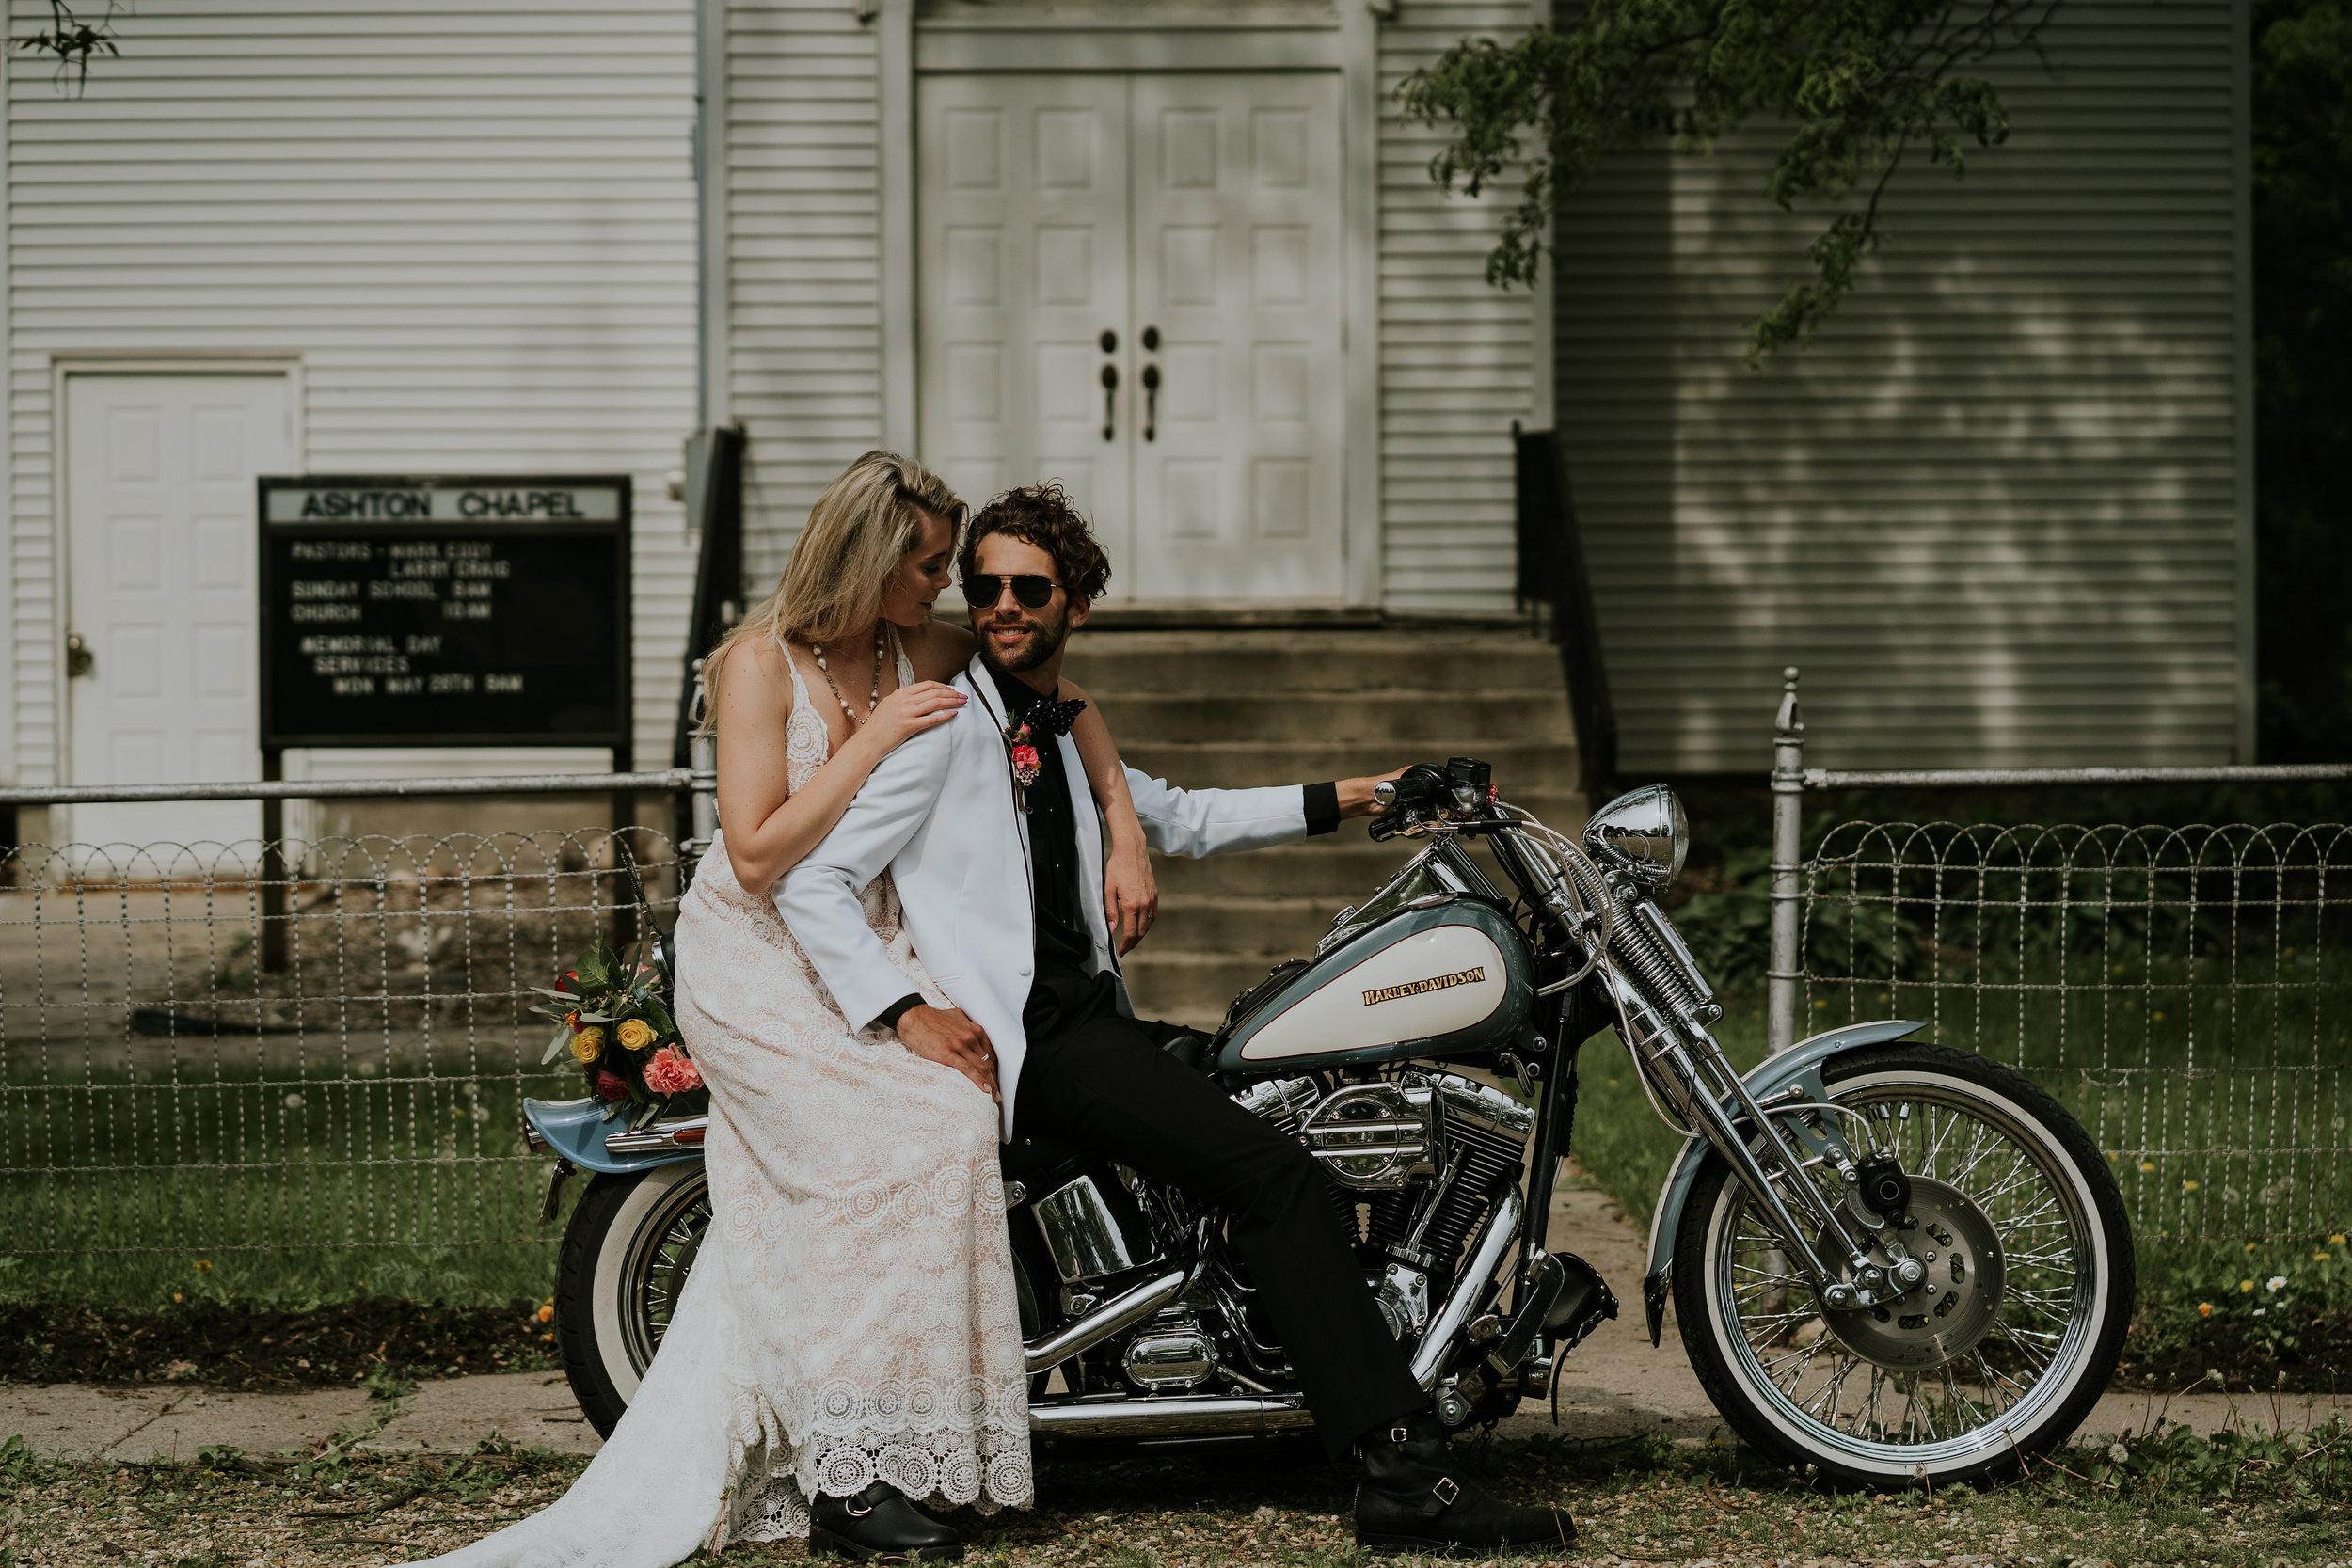 road-trip-romance-wedding-raelyn-ramey-photography-23.jpg